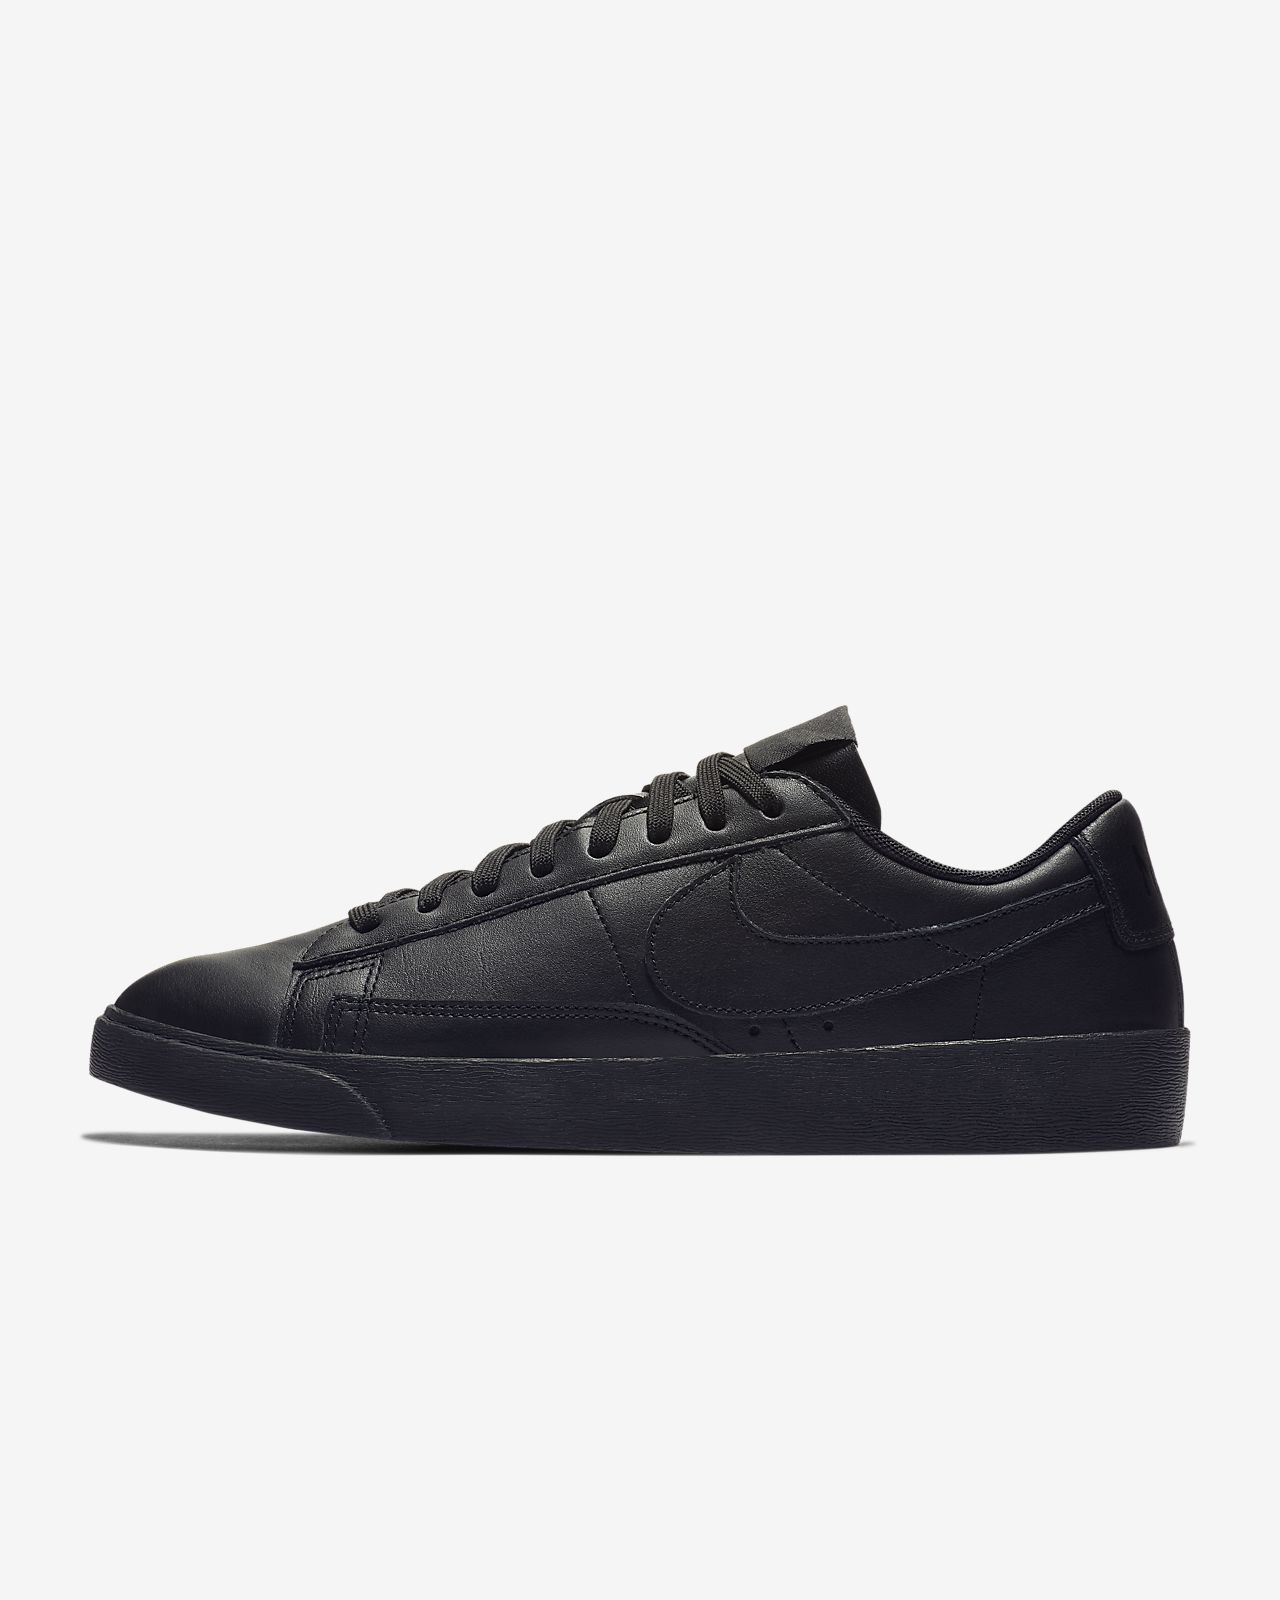 buy popular 4c6ae b38bd ... Sko Nike Blazer Low LE för kvinnor